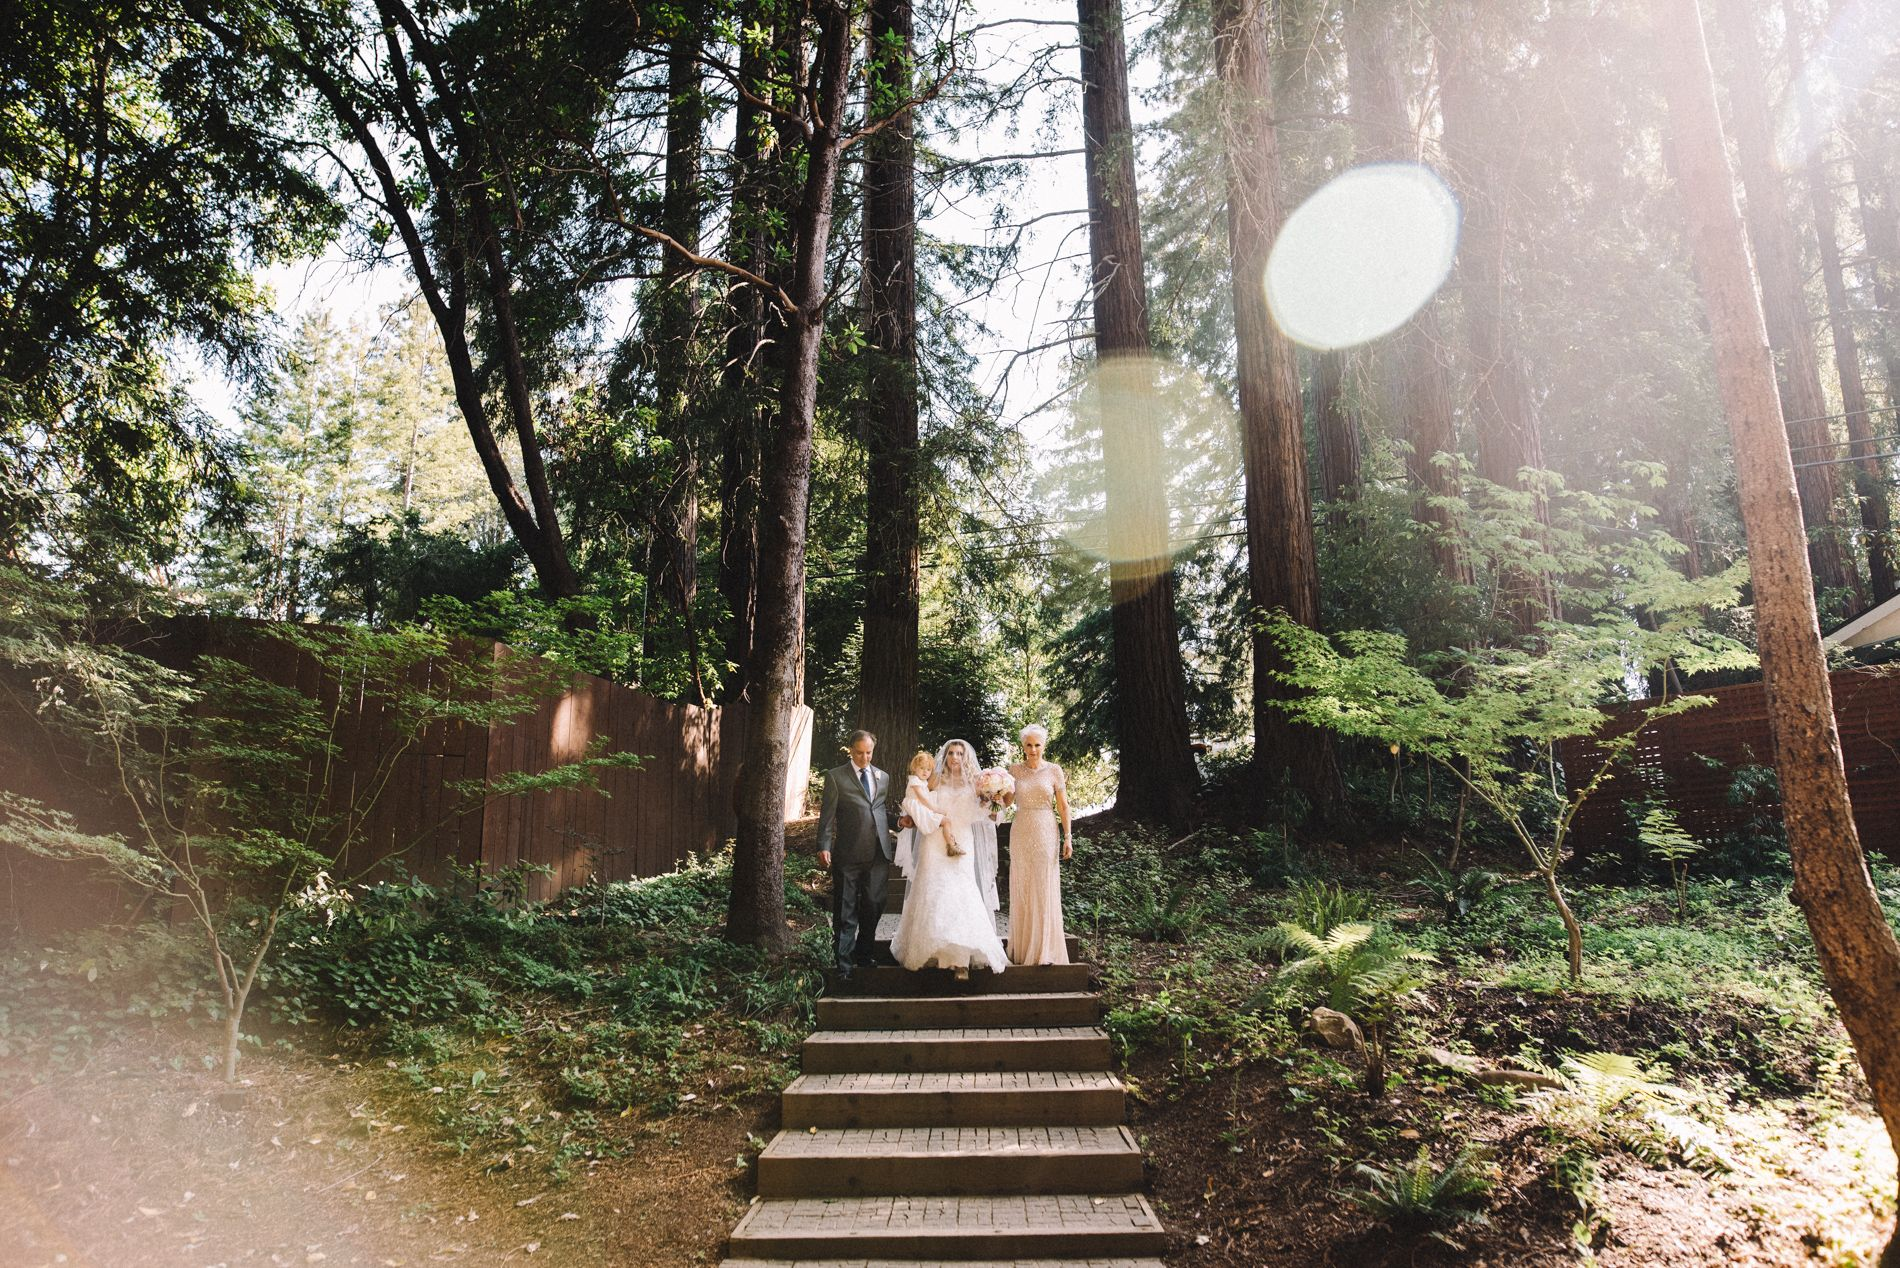 A Magical Moment Walking Down the Aisle   Amphitheatre of the Redwoods at Pema Osel Ling   Wedding and Event Venue   Santa Cruz Mountains, CA   Redwood Forest Wedding   Photo Courtesy of Ahava Studios